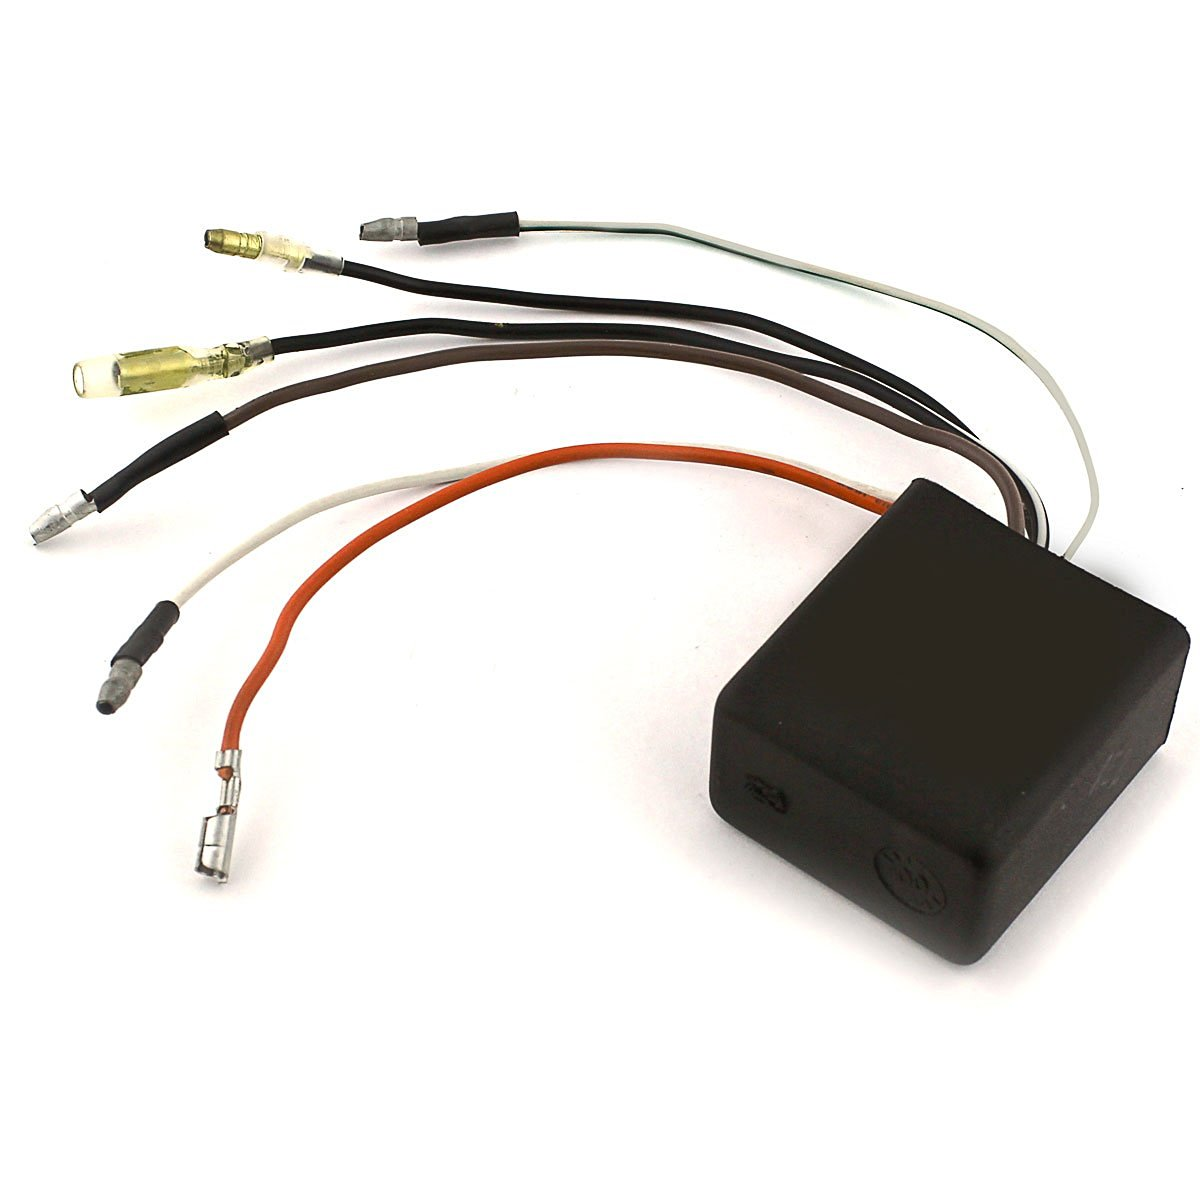 hight resolution of buy caltric cdi module fits yamaha dt125 dt 125 123cc engine 1980caltric cdi module fits yamaha